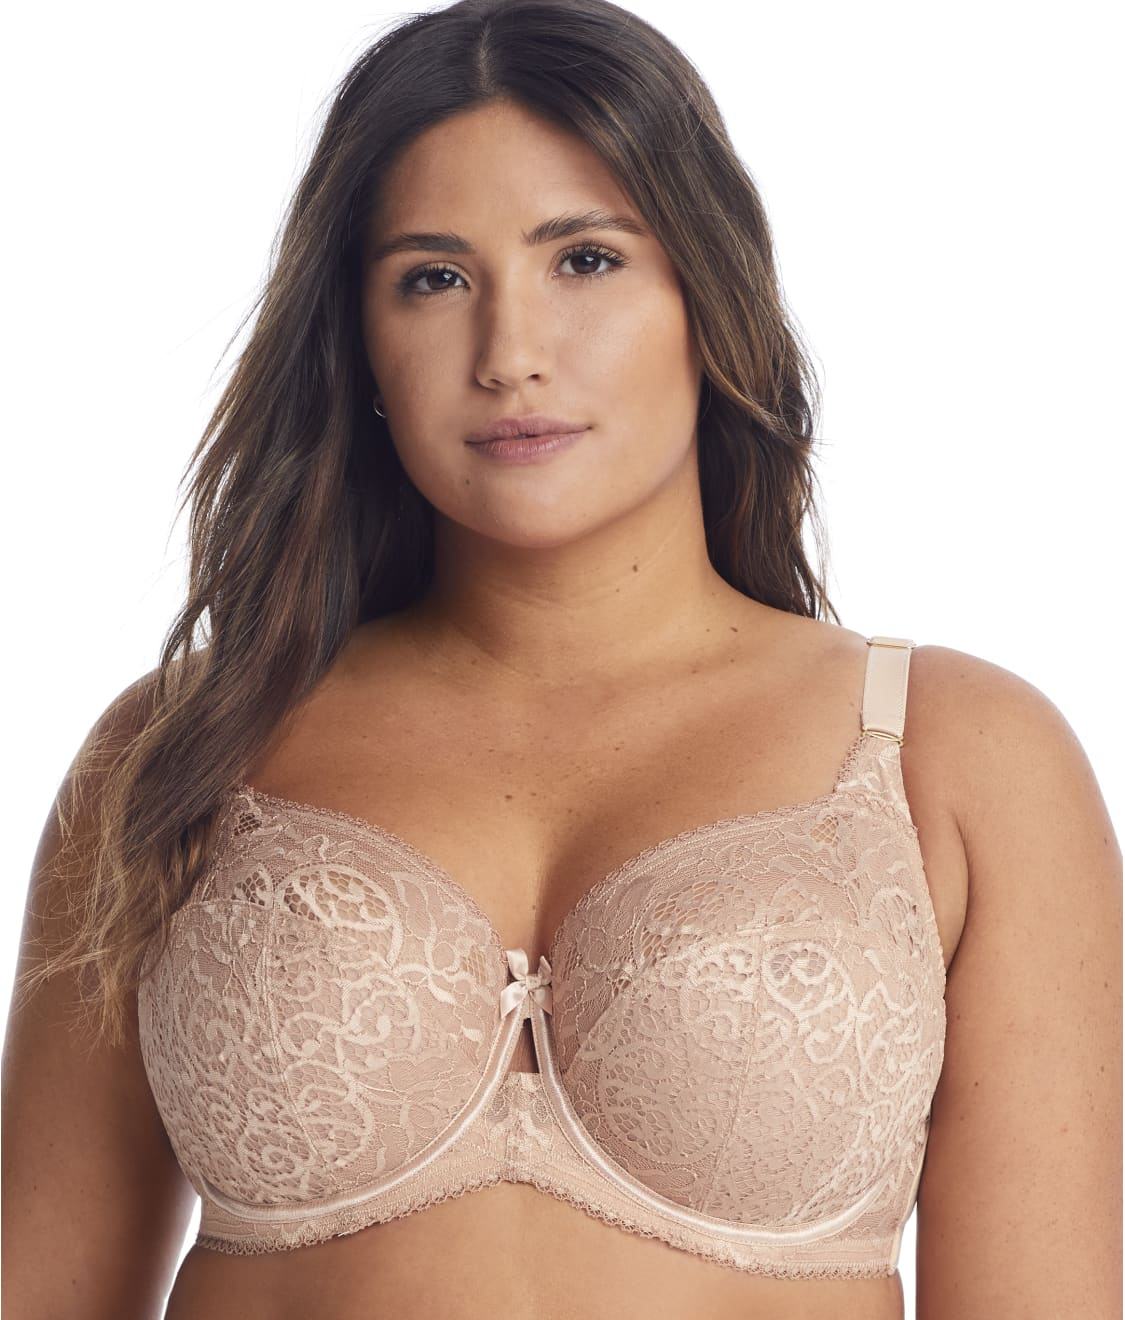 Sculptresse By Panache Dionne Full Cup Bra 9895 Underwired Supportive Bras